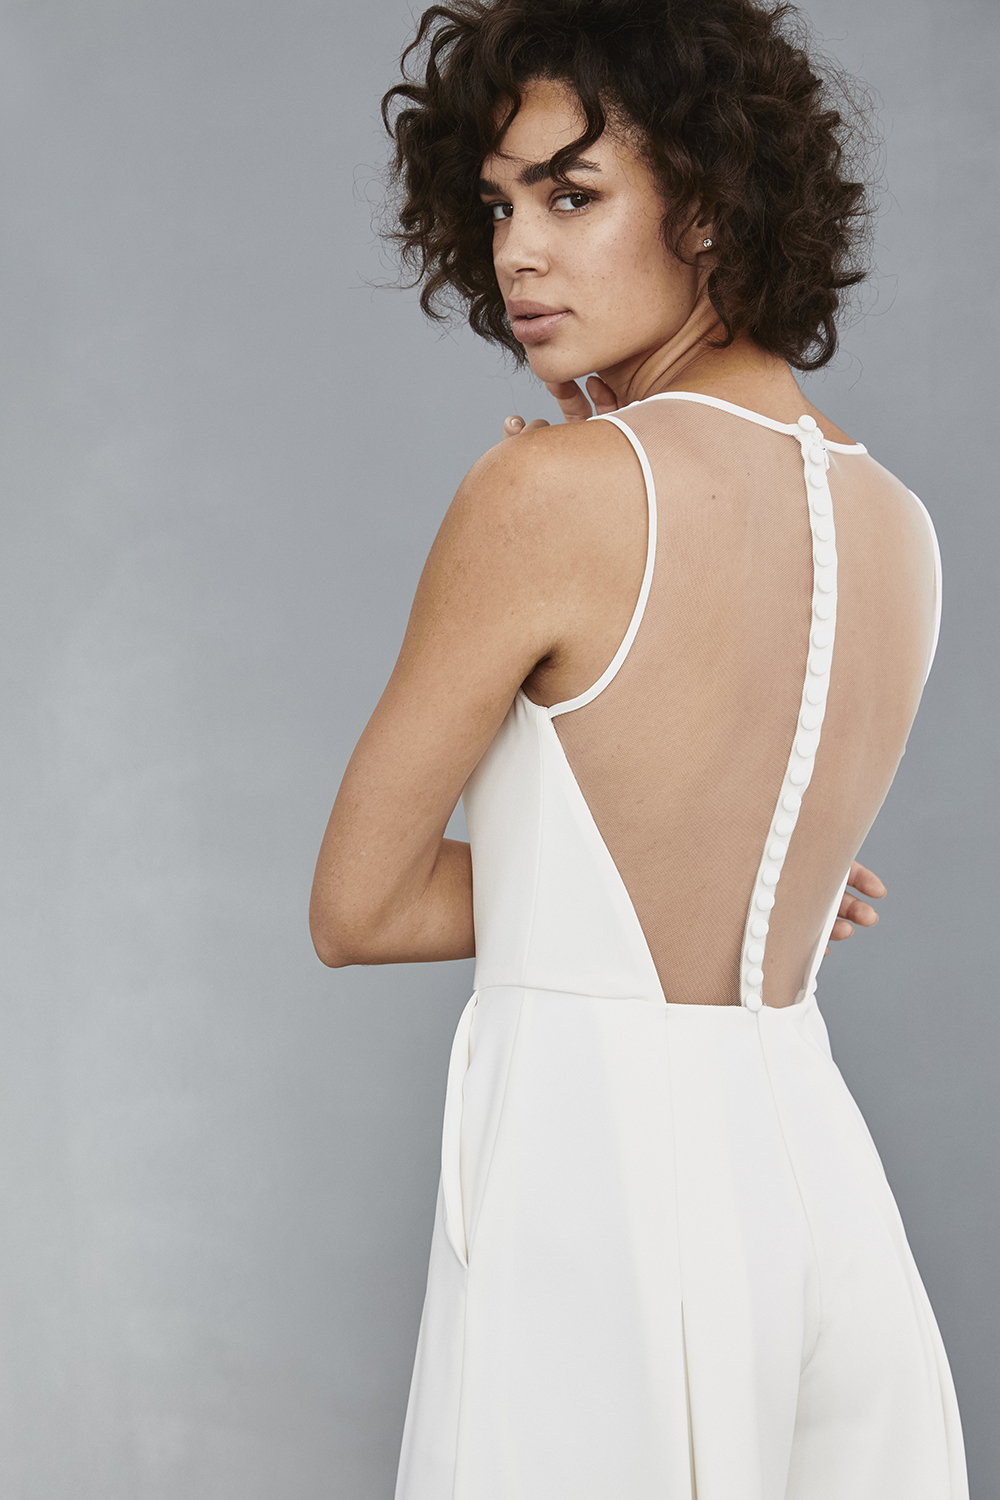 Button back detail on illusion back of Amsale Little White Dresses jumpsuit style LW136